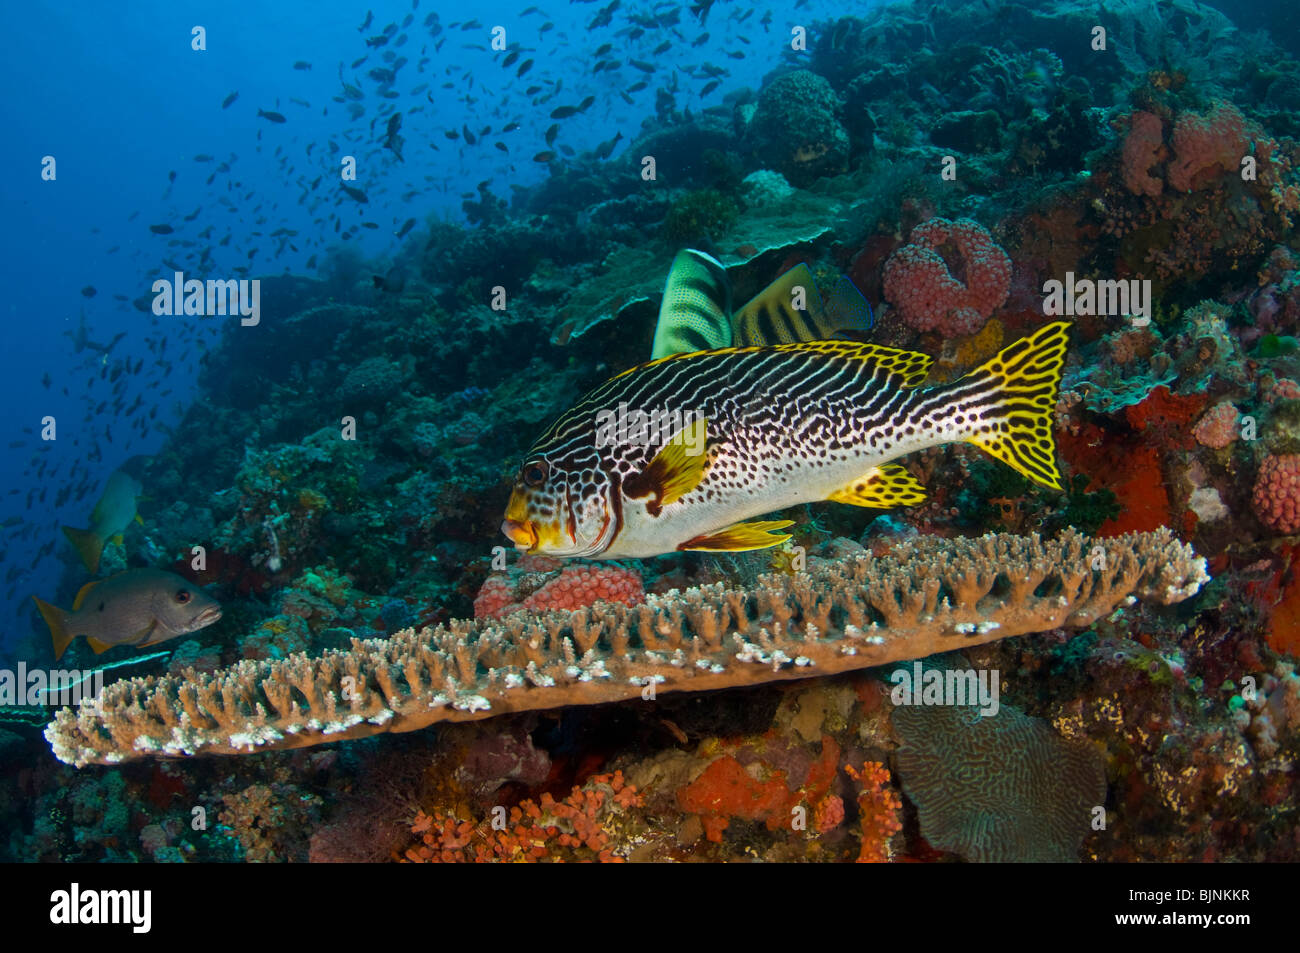 Diagonal-banded sweetlips, Plectorhinchus lineatus, on coral reef Current City, Komodo National Park, Indonesia - Stock Image